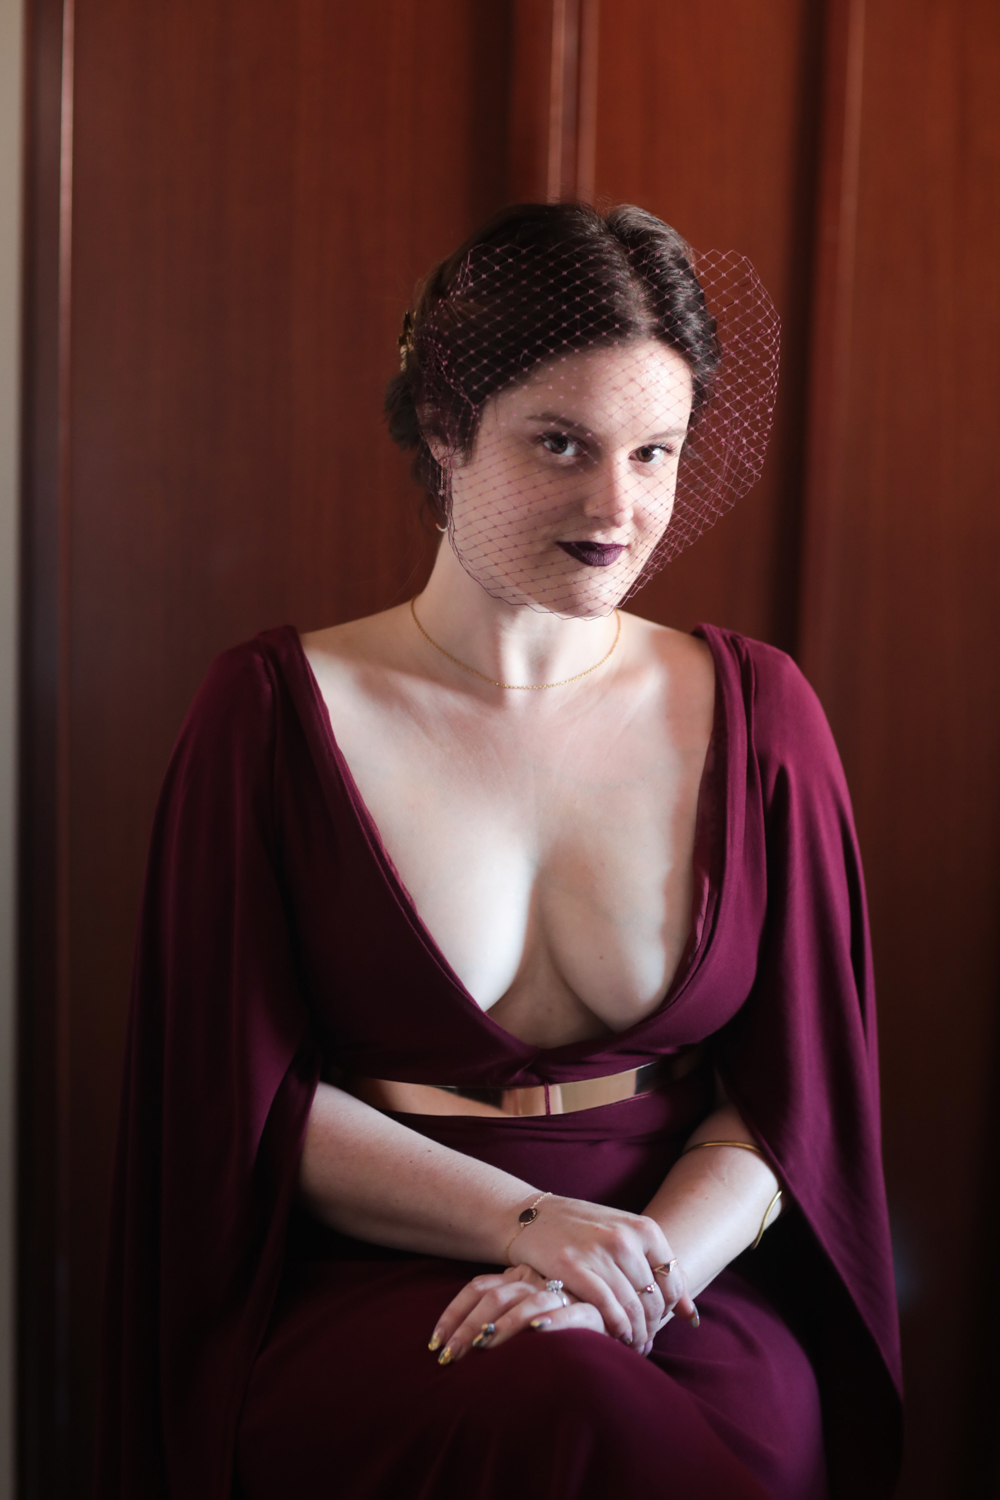 Portrait of the bride in a caped burgundry wedding dress.